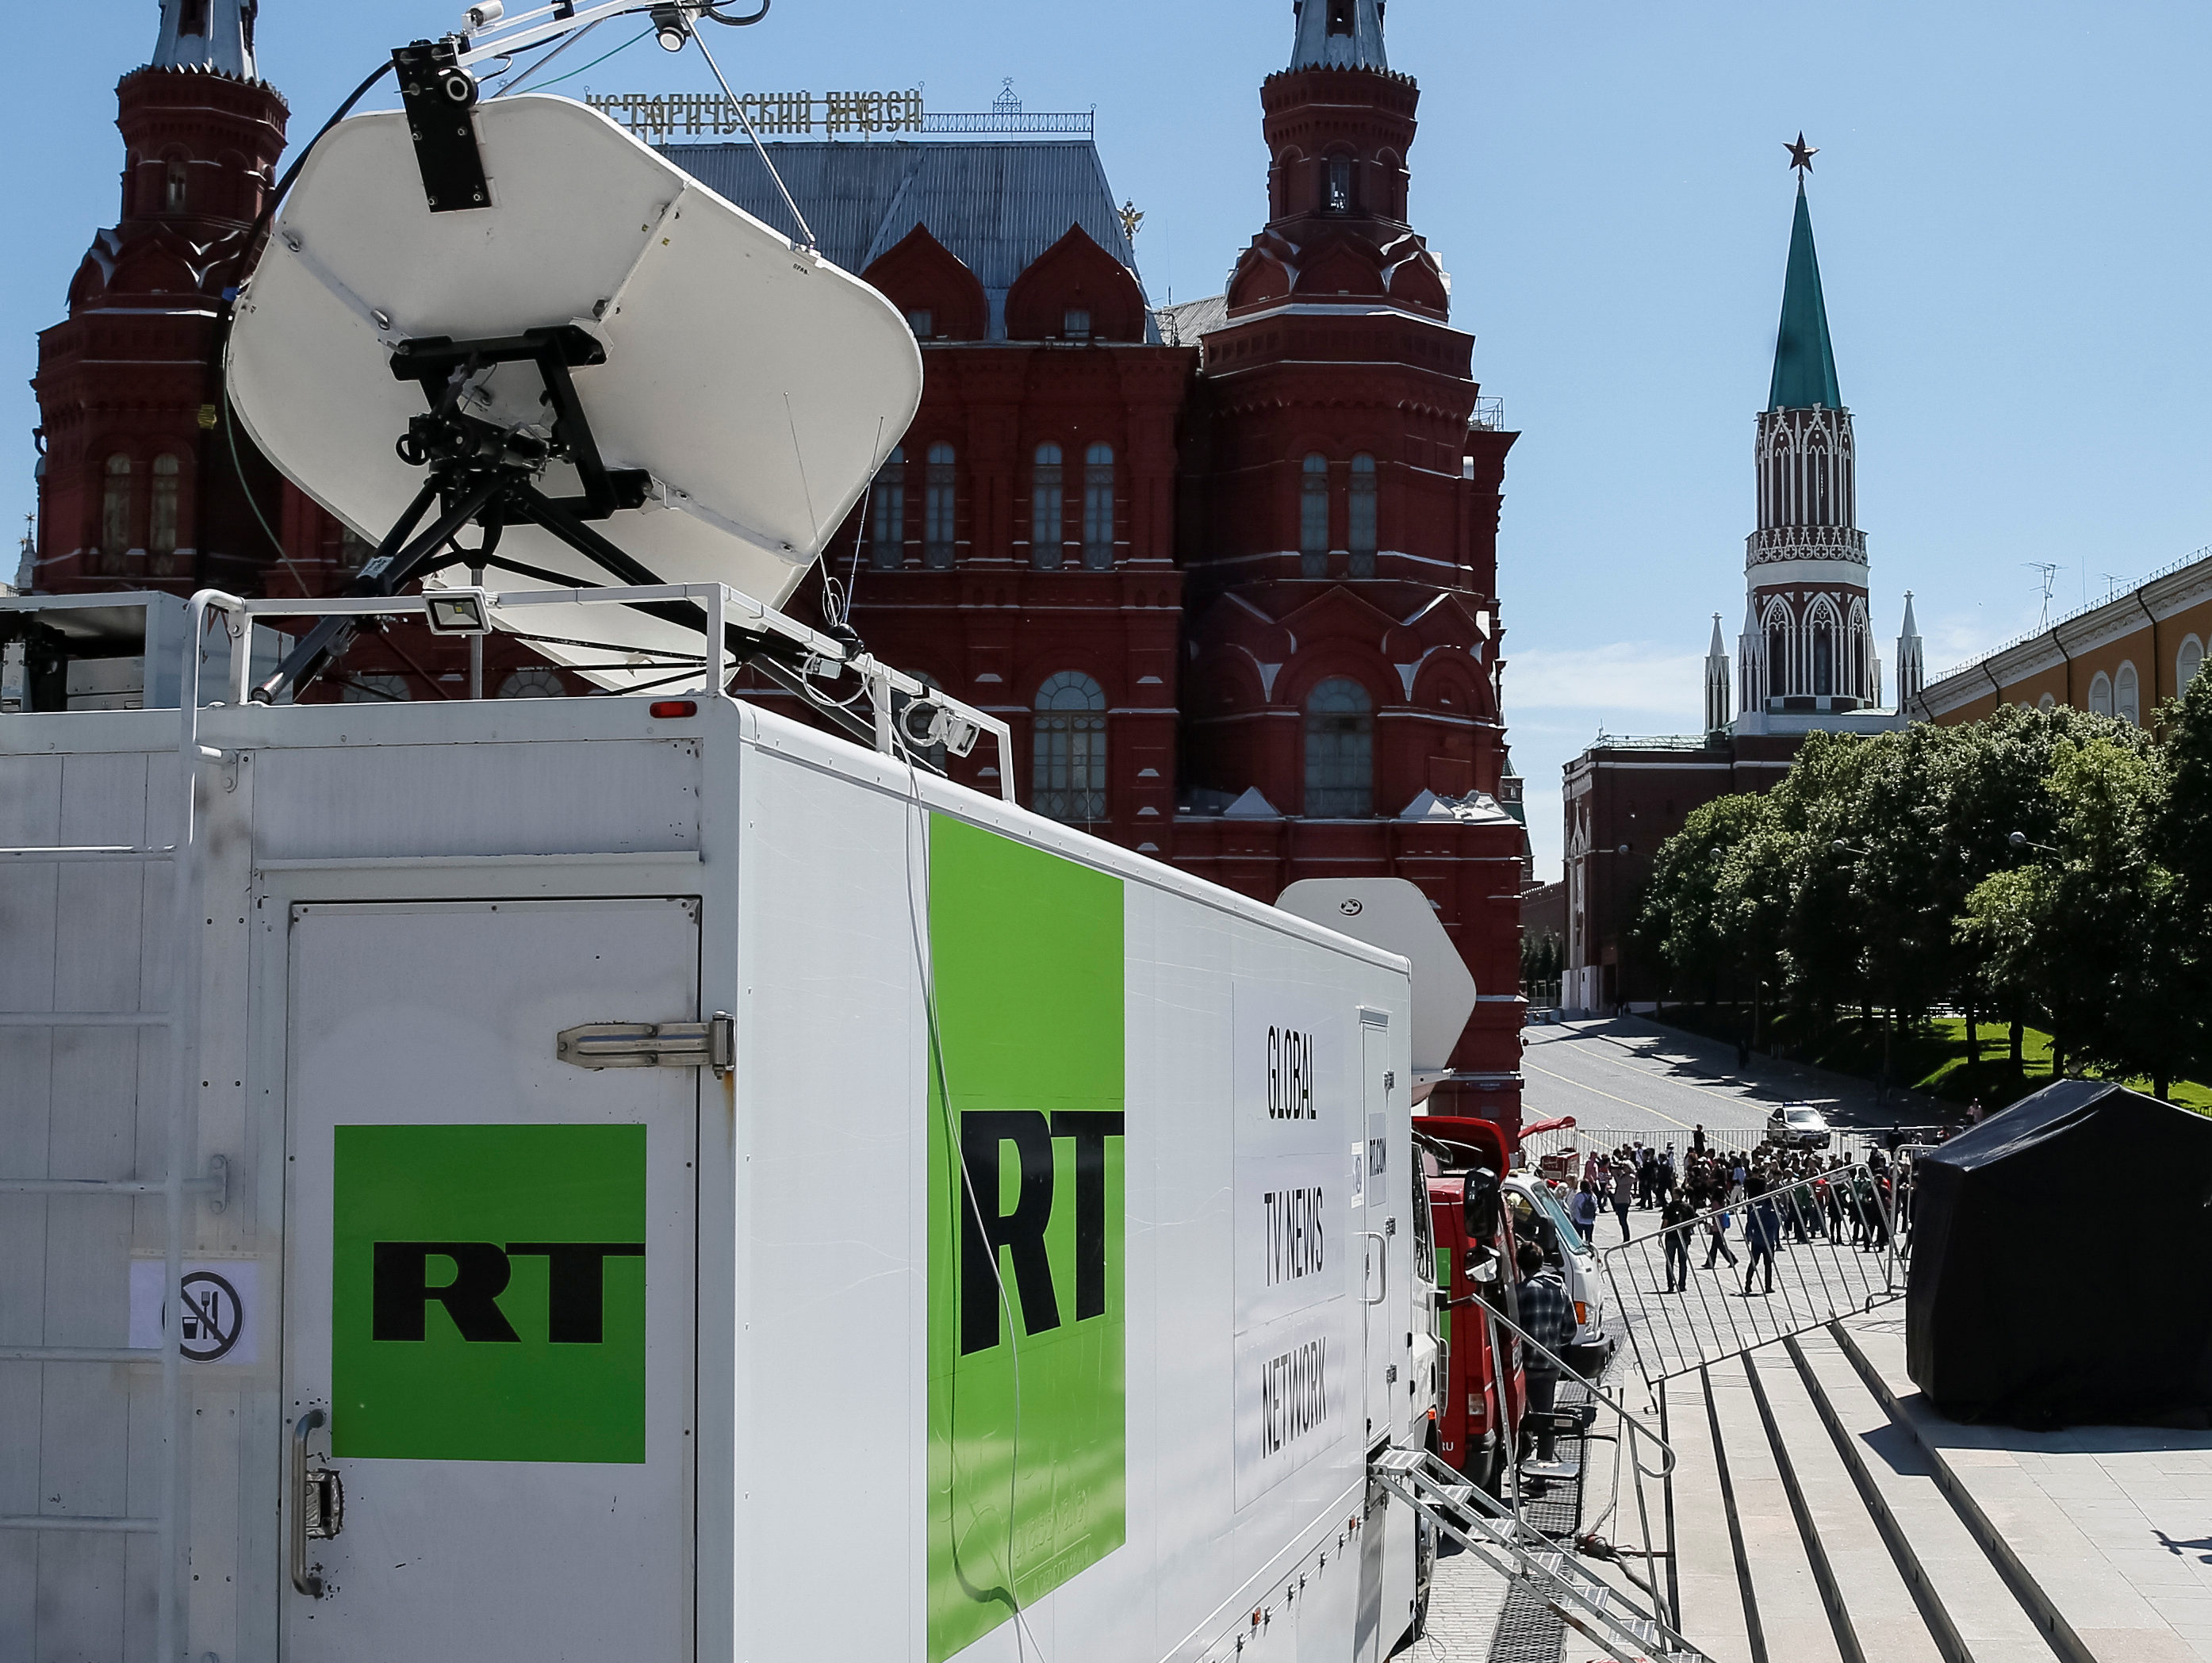 RT (Russia Today) fined £200,000 by Ofcom for 'serious